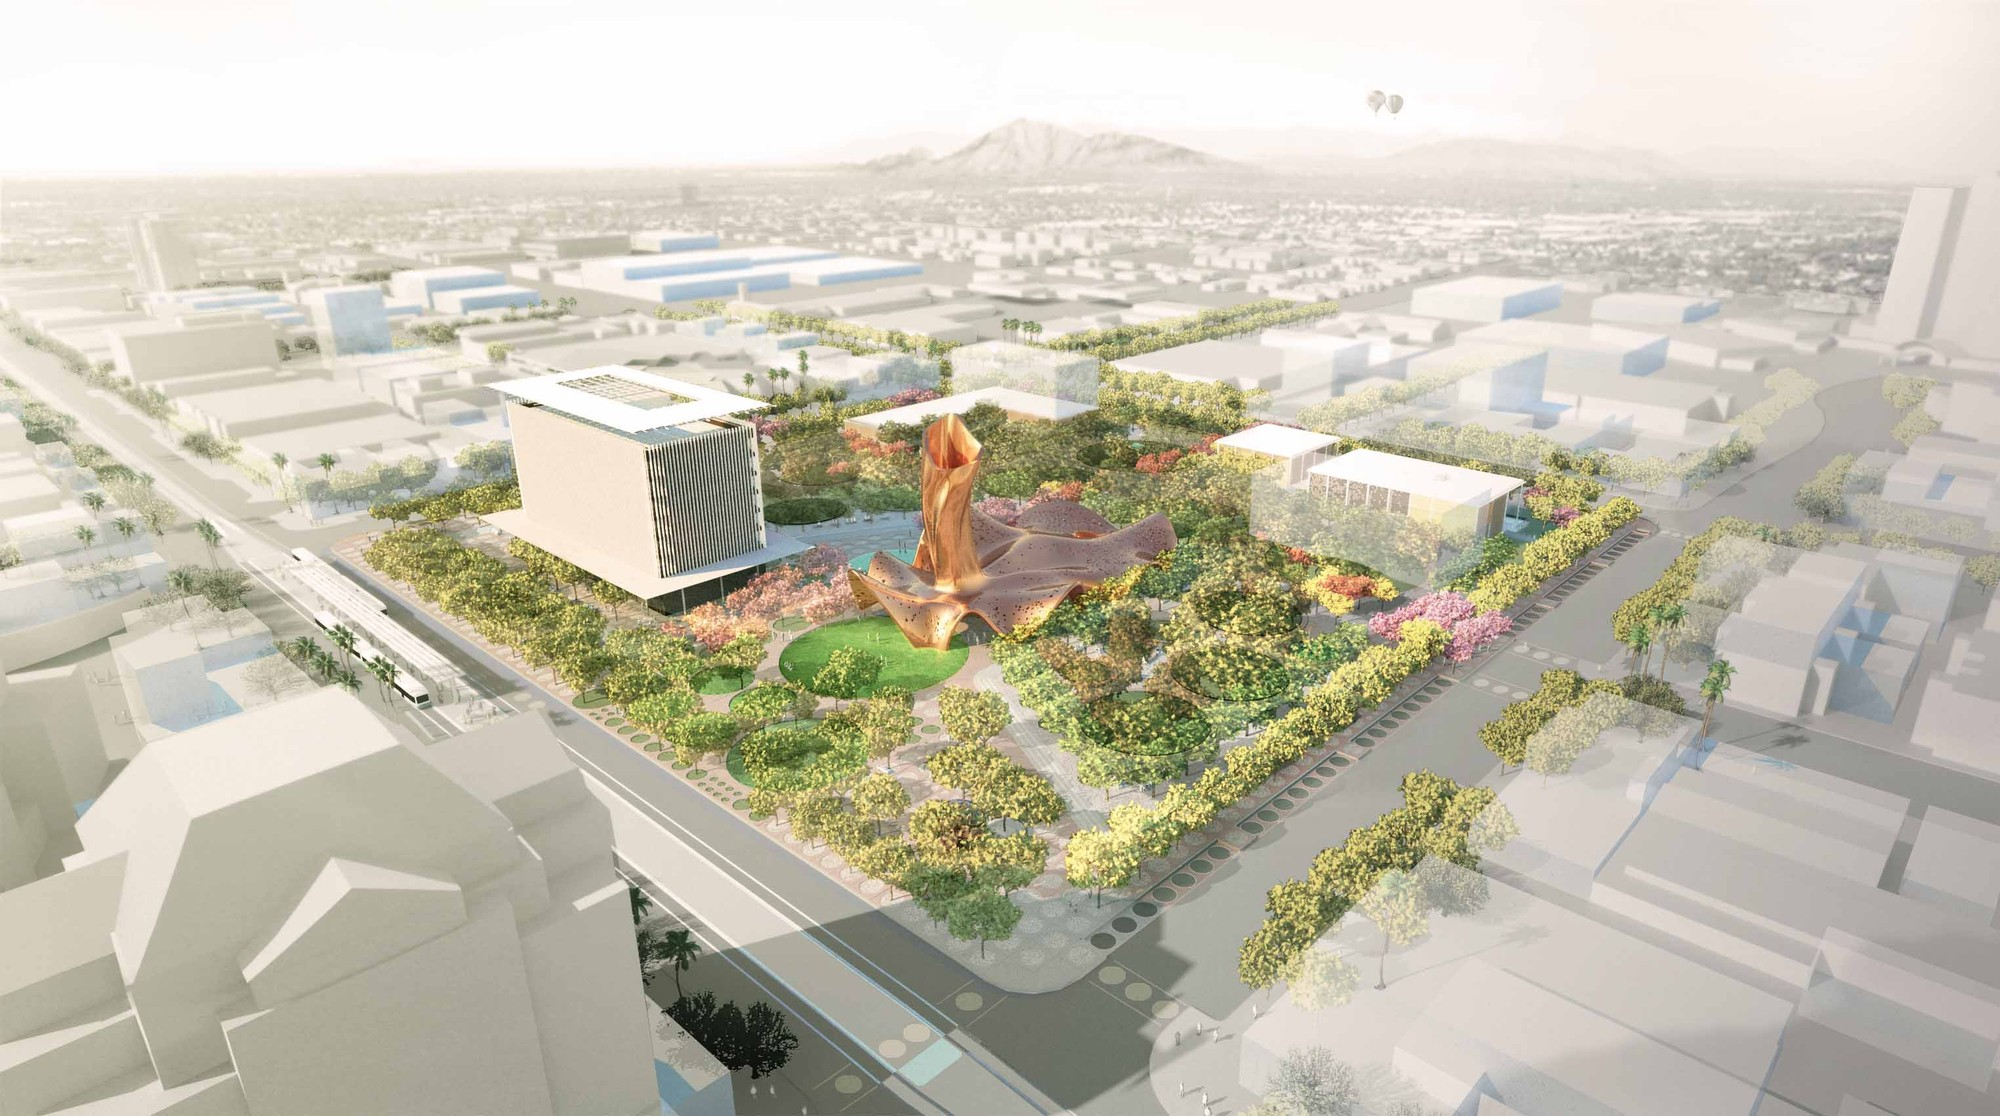 Weddle Gilmore, West 8 and Colwell Shelor Selected to Redesign Arizona's Mesa City Center, Context. Image © Colwell Shelor, West 8 and Weddle Gilmore